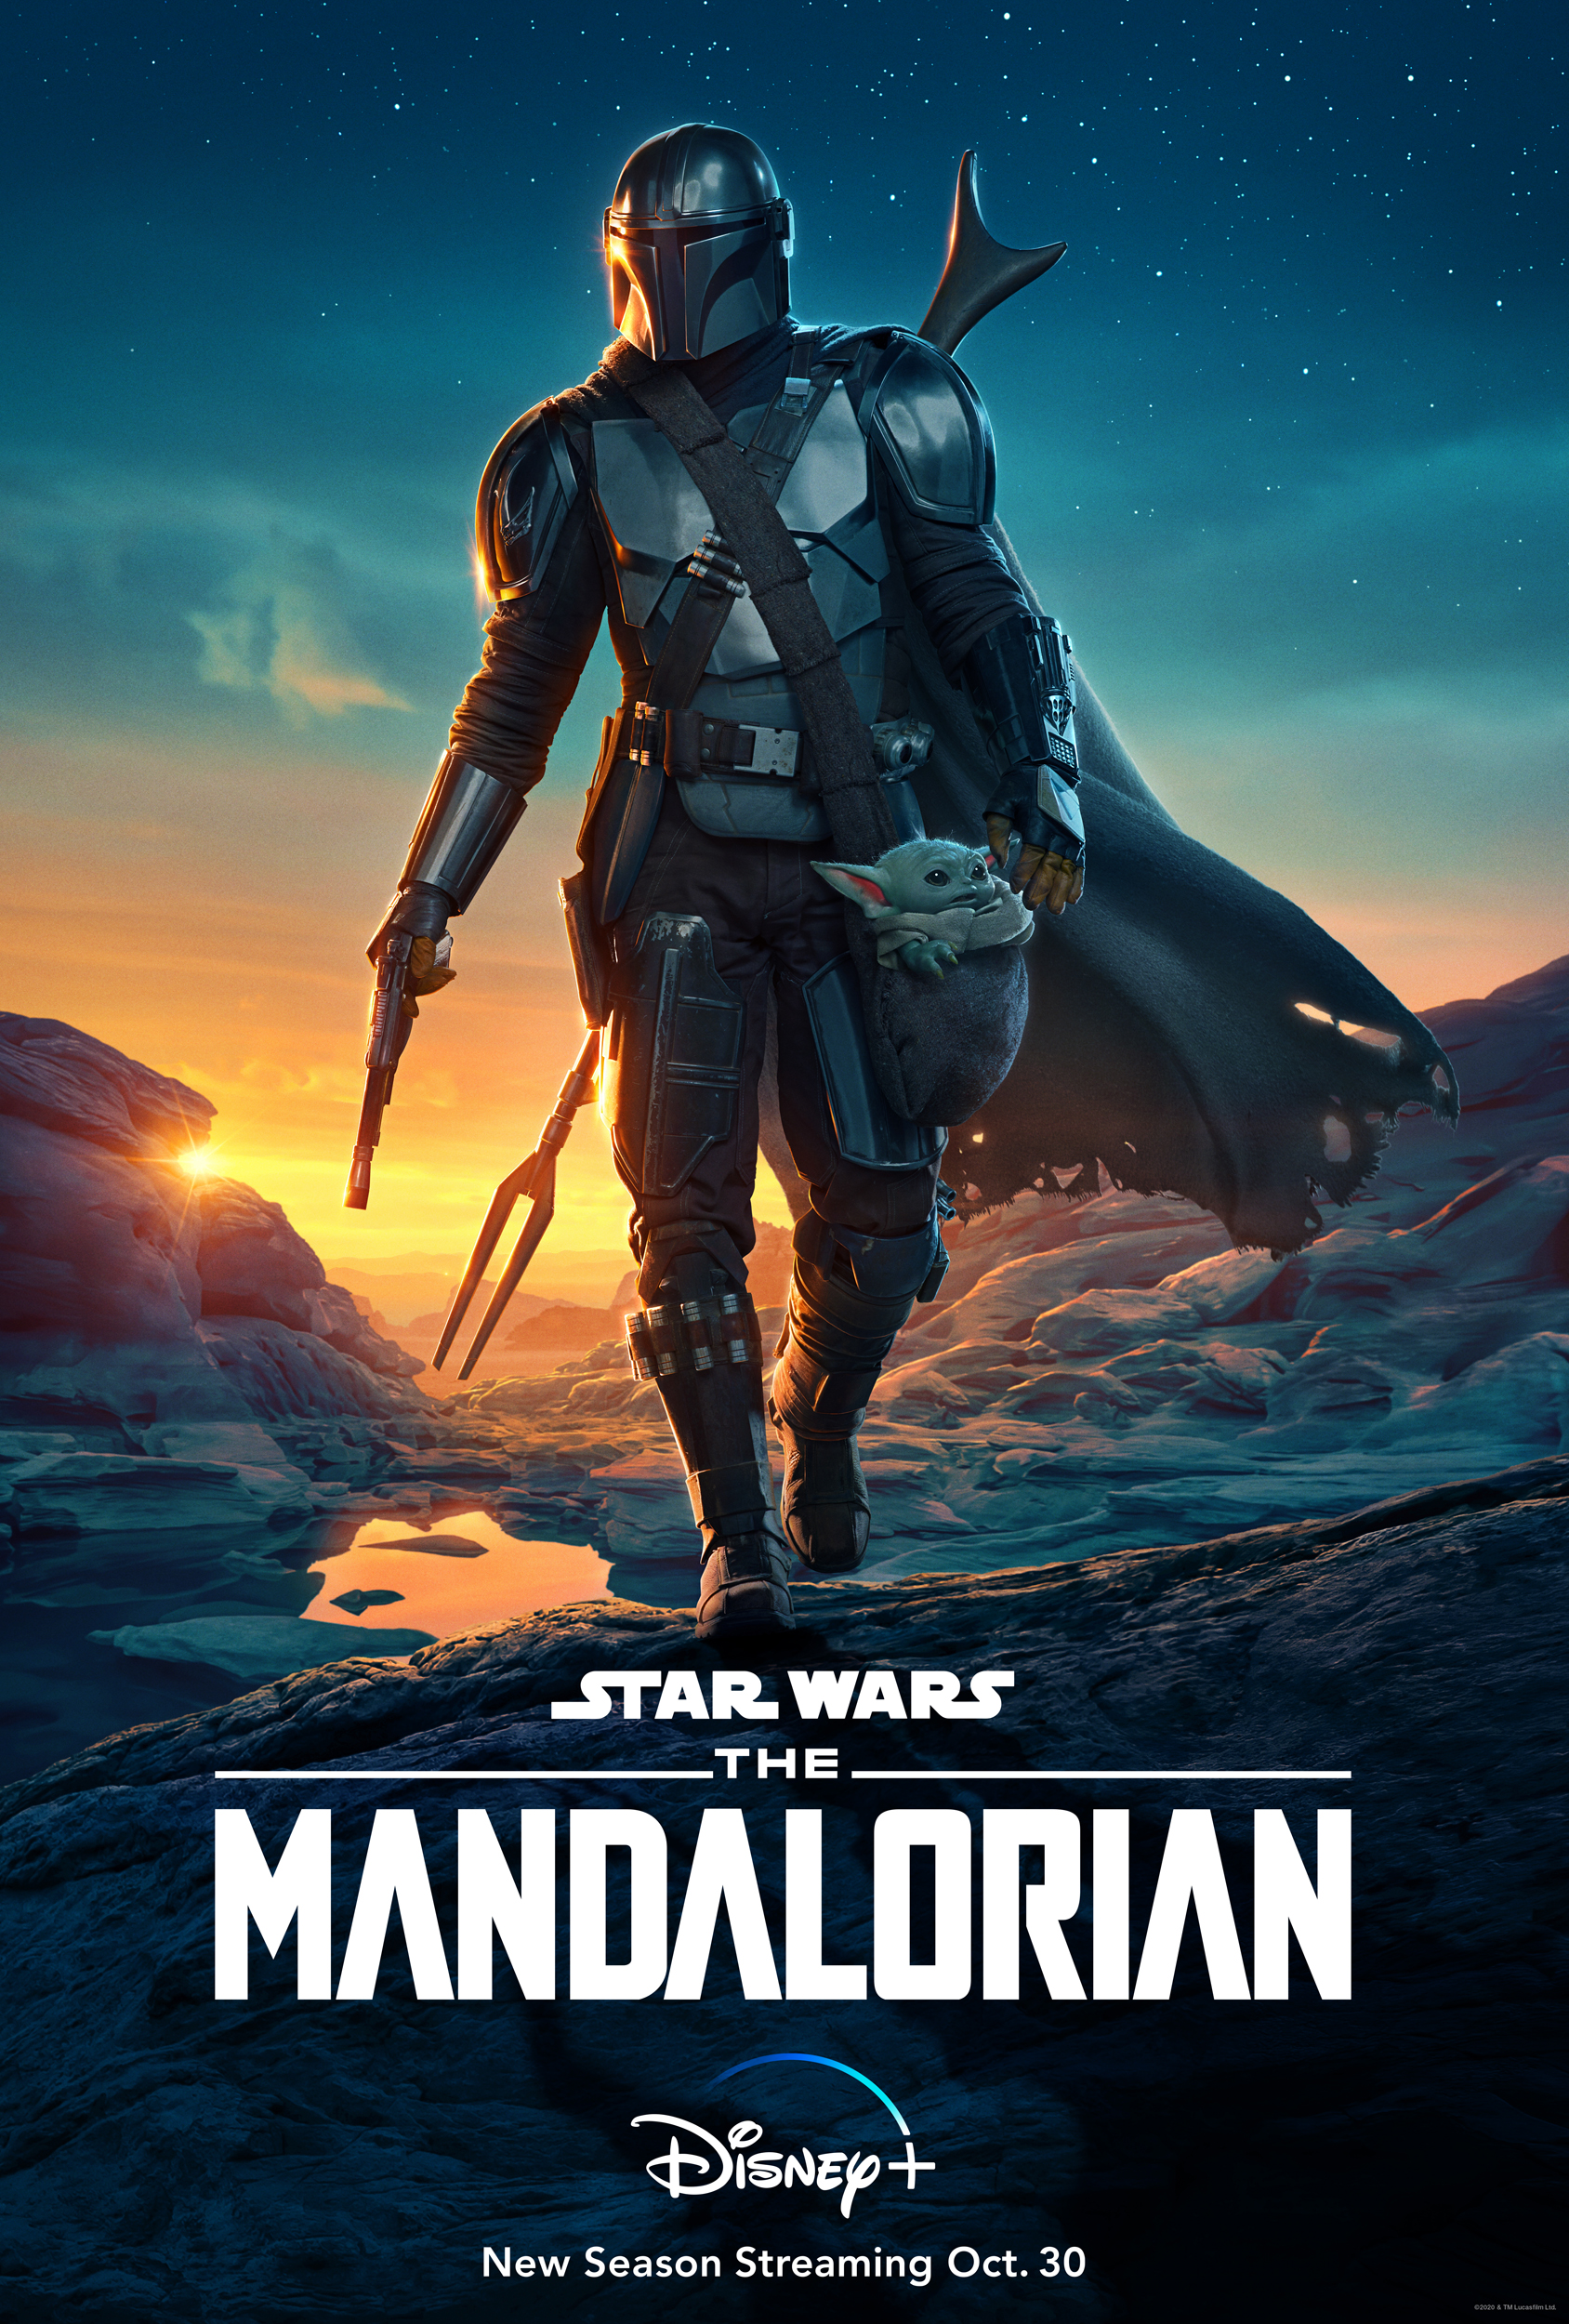 The Mandalorian 2020 S02EP3 English 720p HDRip ESubs 225MB Download